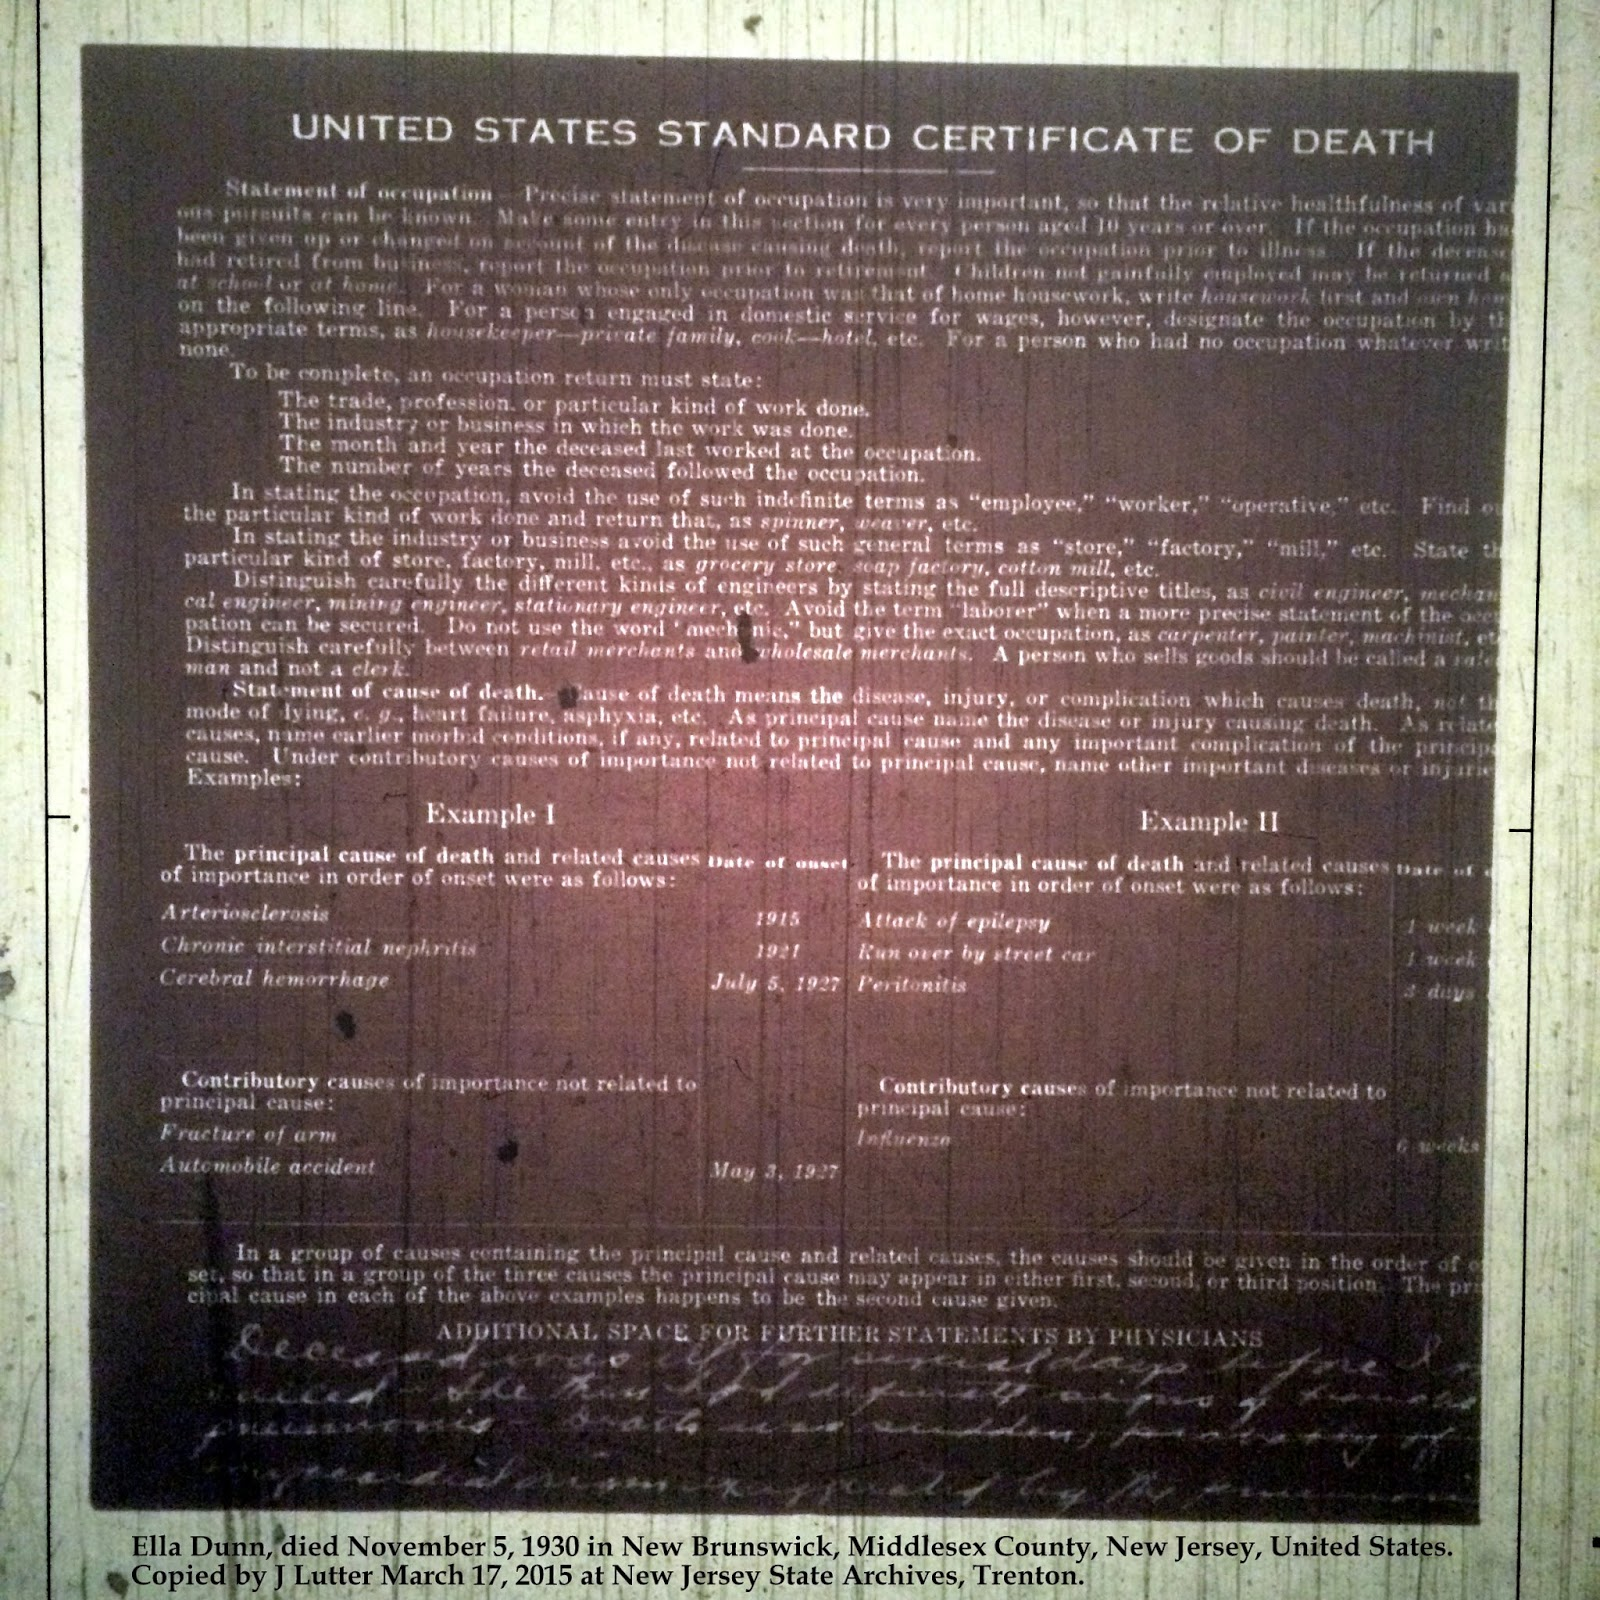 Family history research by jody hit or miss records copied by j lutter march 17 2015 at new jersey state archives trenton xflitez Images